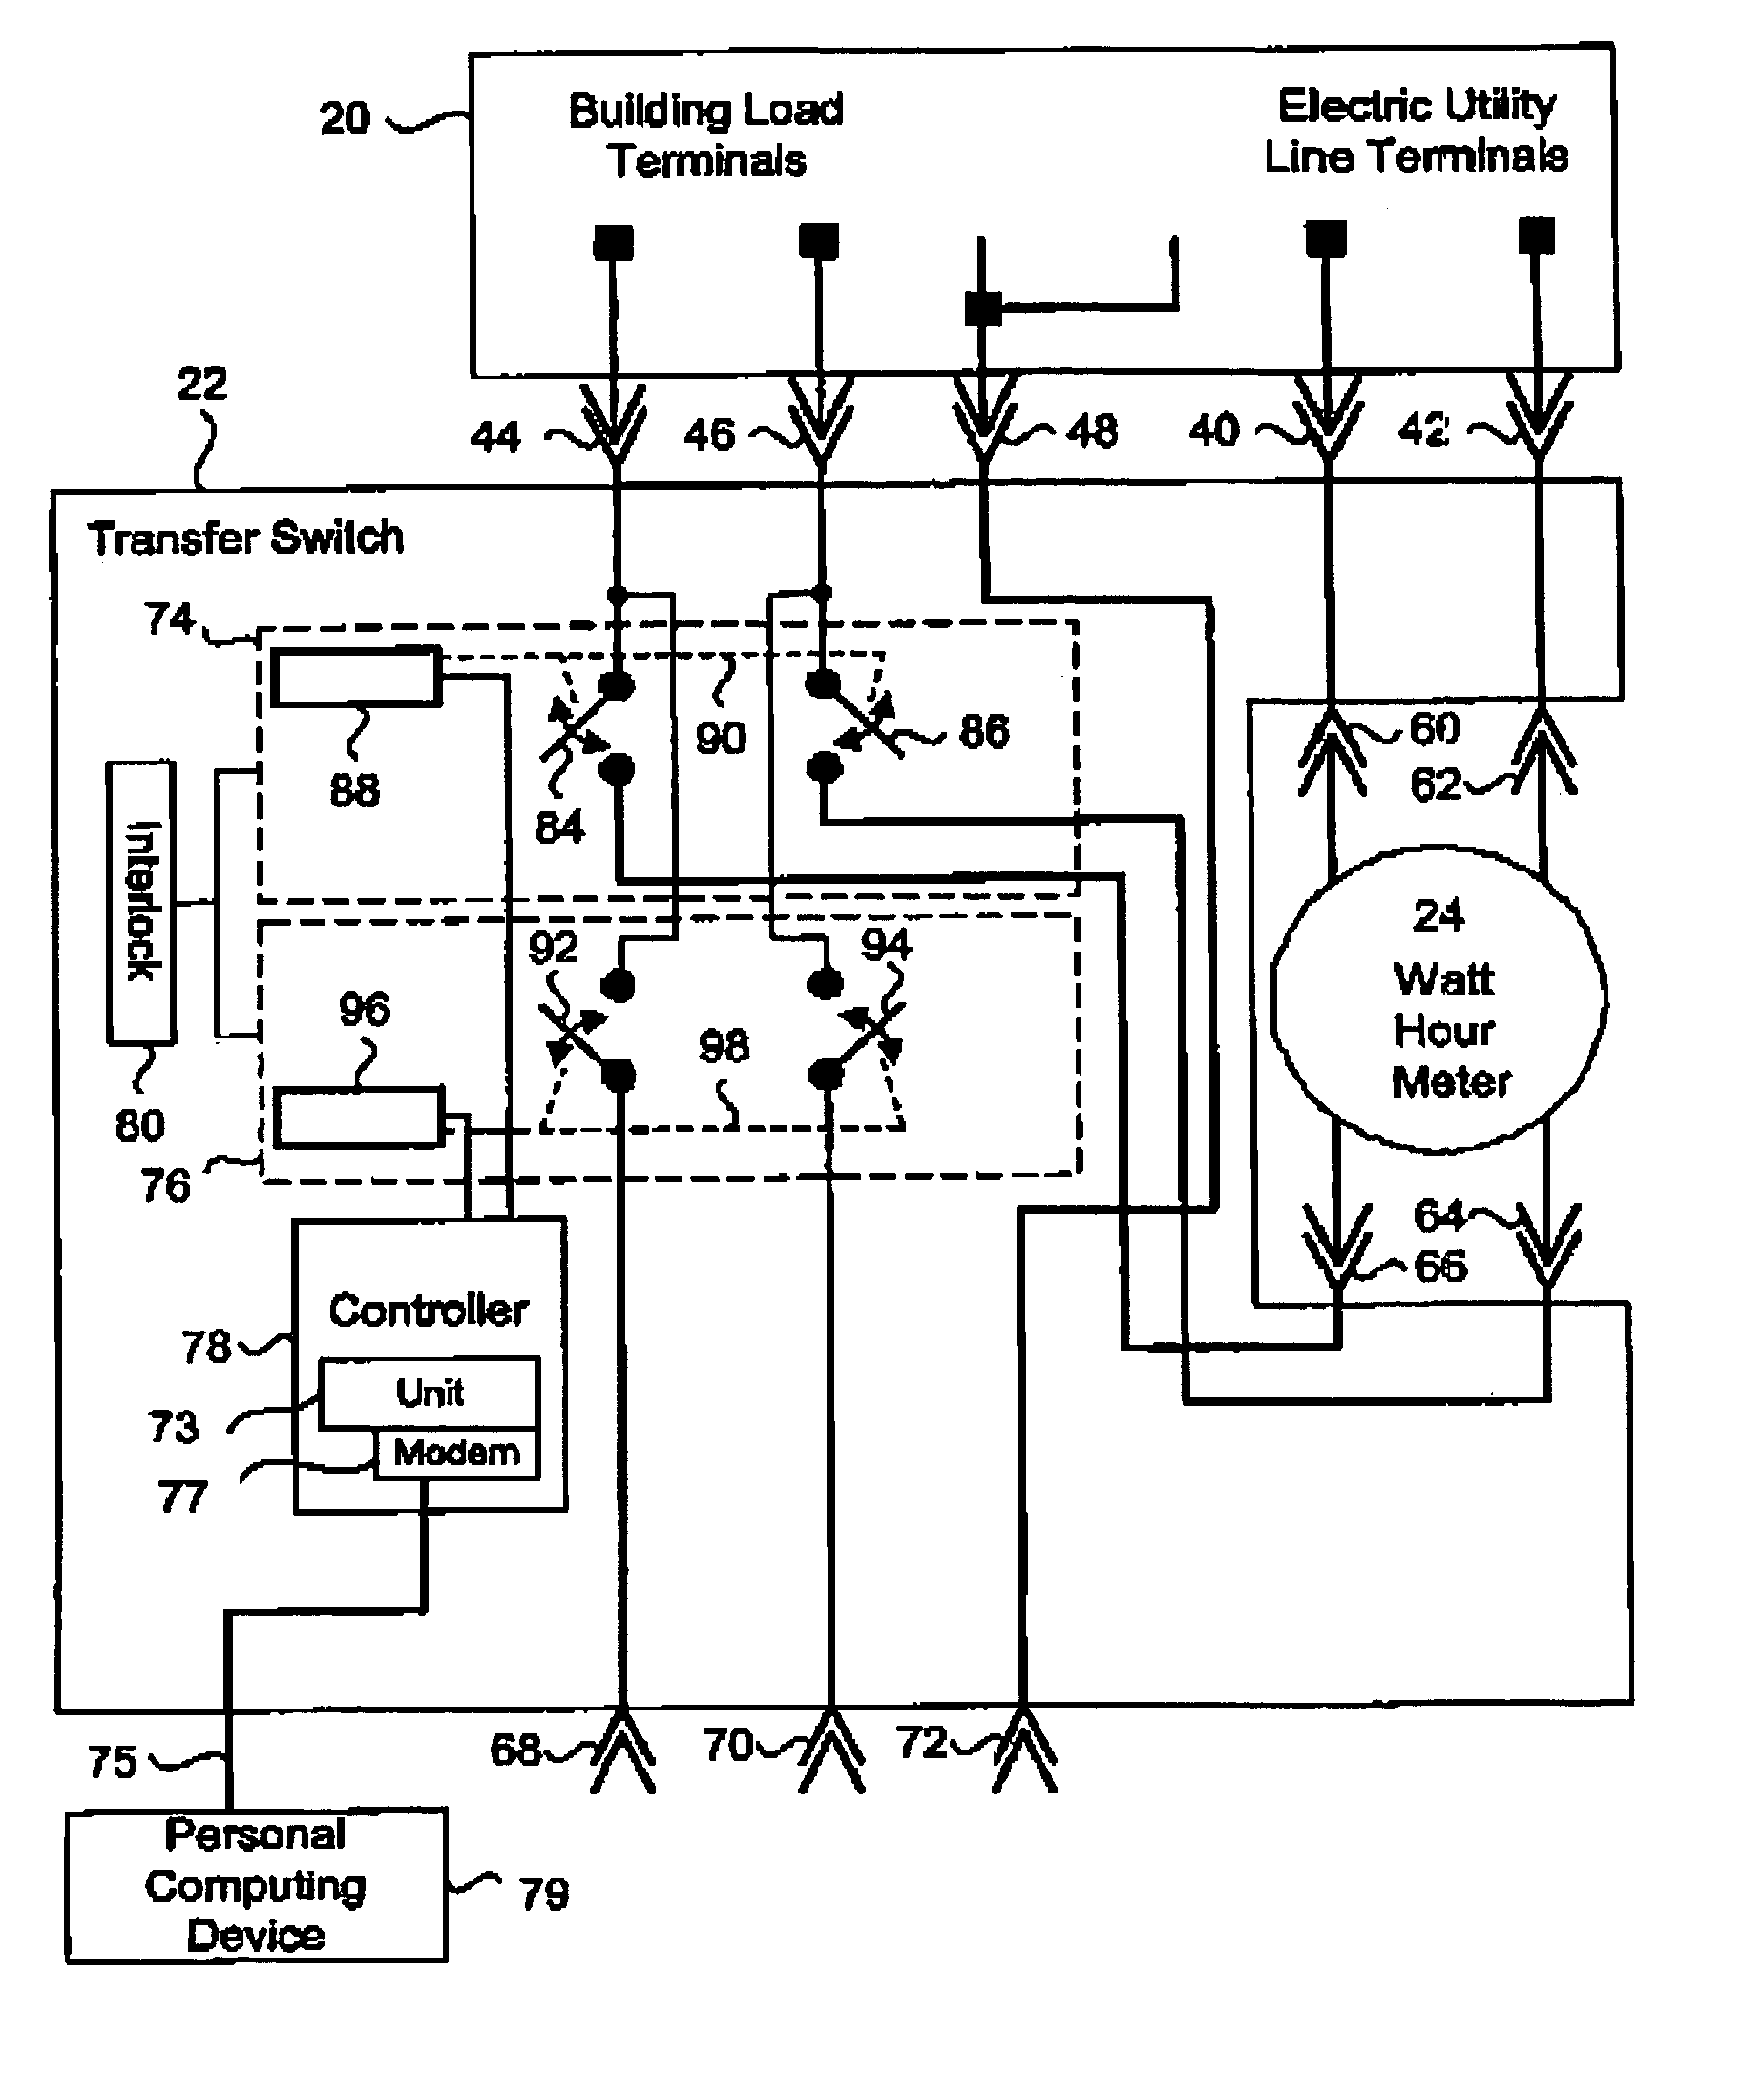 westinghouse automatic transfer switch wiring diagram wiring westinghouse automatic transfer switch wiring diagram